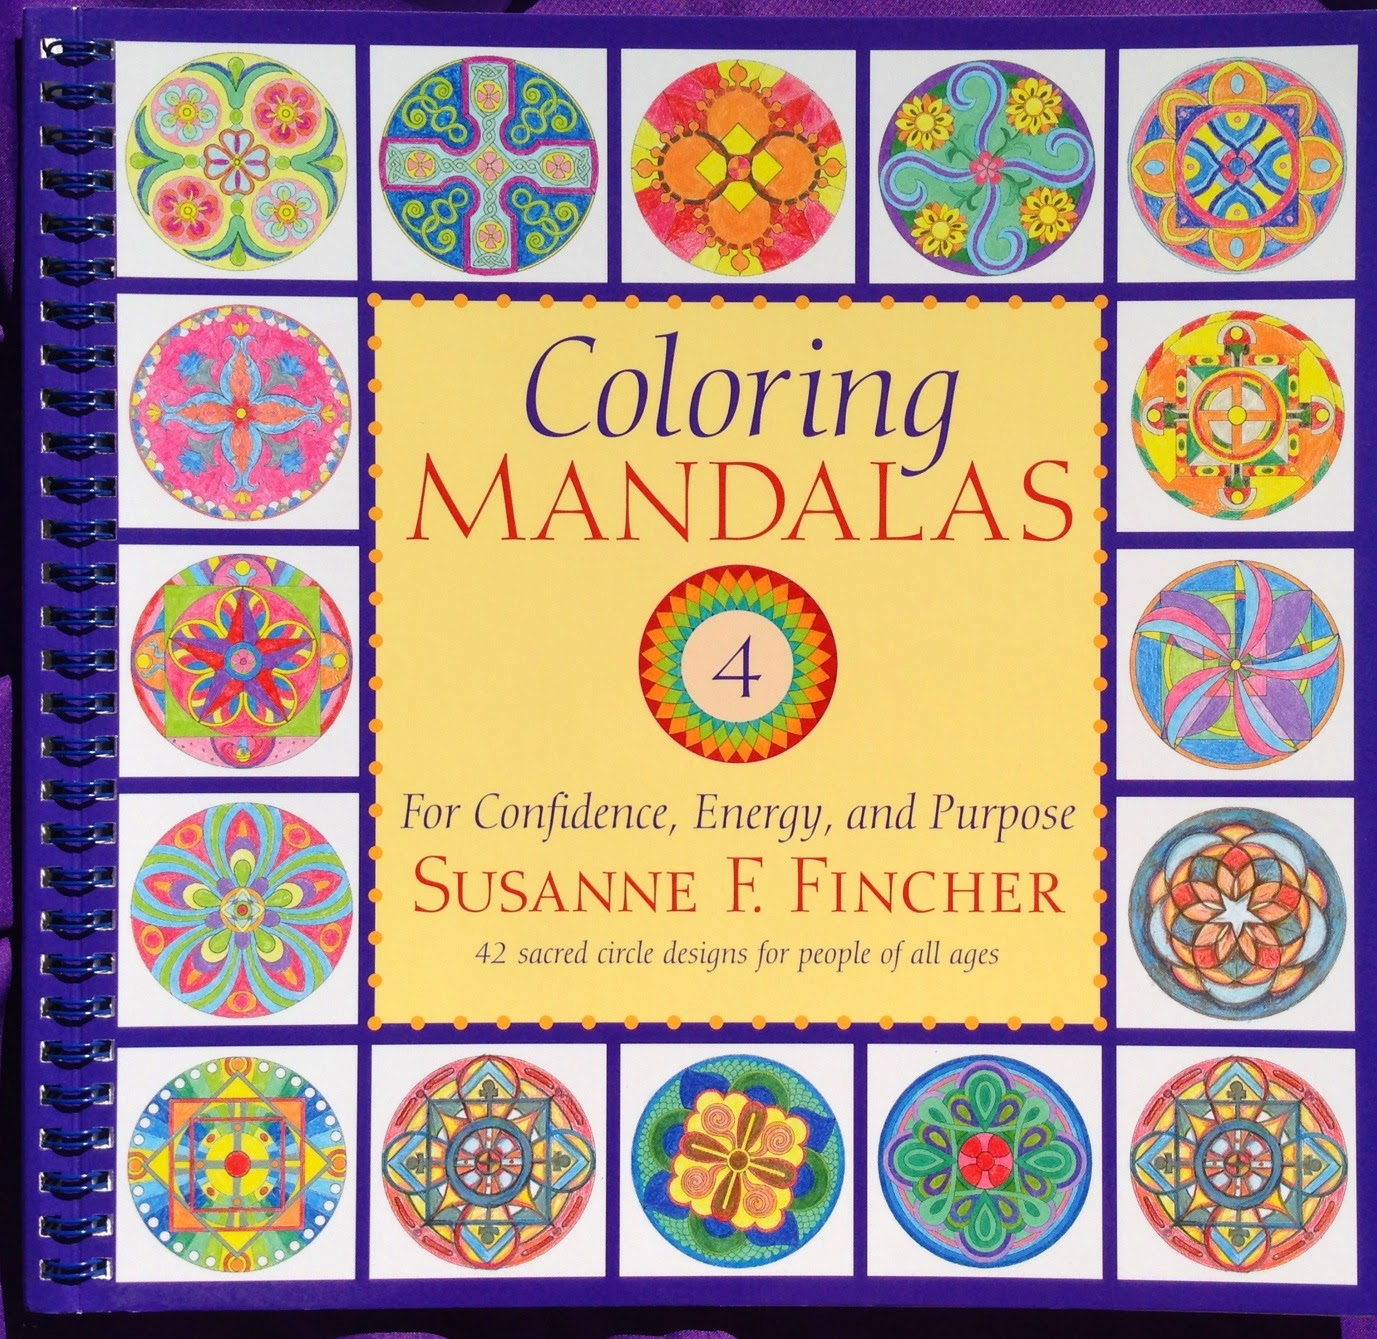 Of Coloring Books For Adults The Article Was Posted On CNN Website April 21 2015 Here Is Full Text Her Questions And My Answers